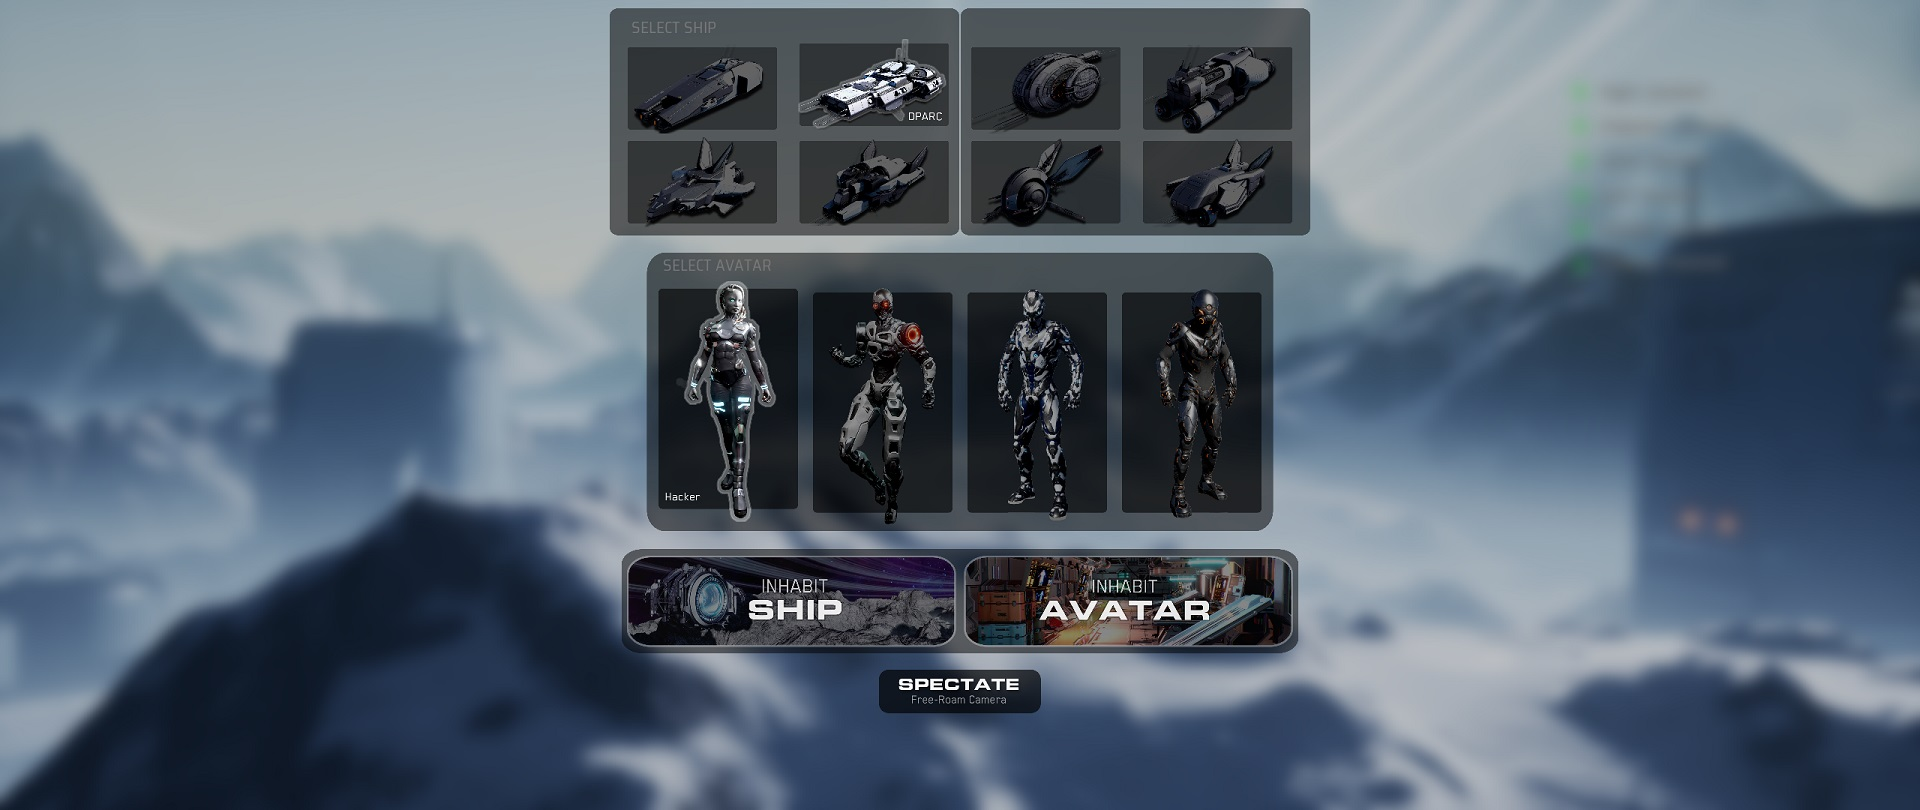 Choose between eight different ships and four avatars.